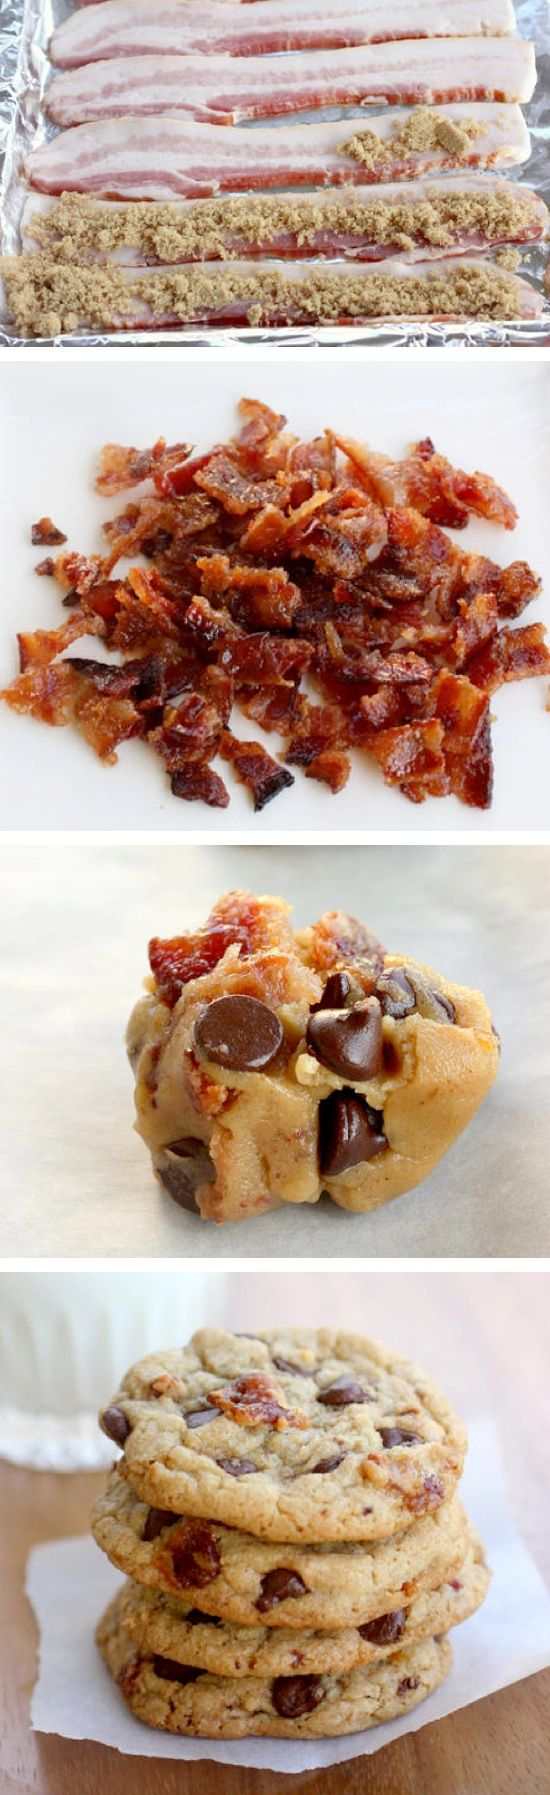 Candied Bacon Chocolate Chip Cookies.. HAVE TO MAKE THESE FOR MY MAN!